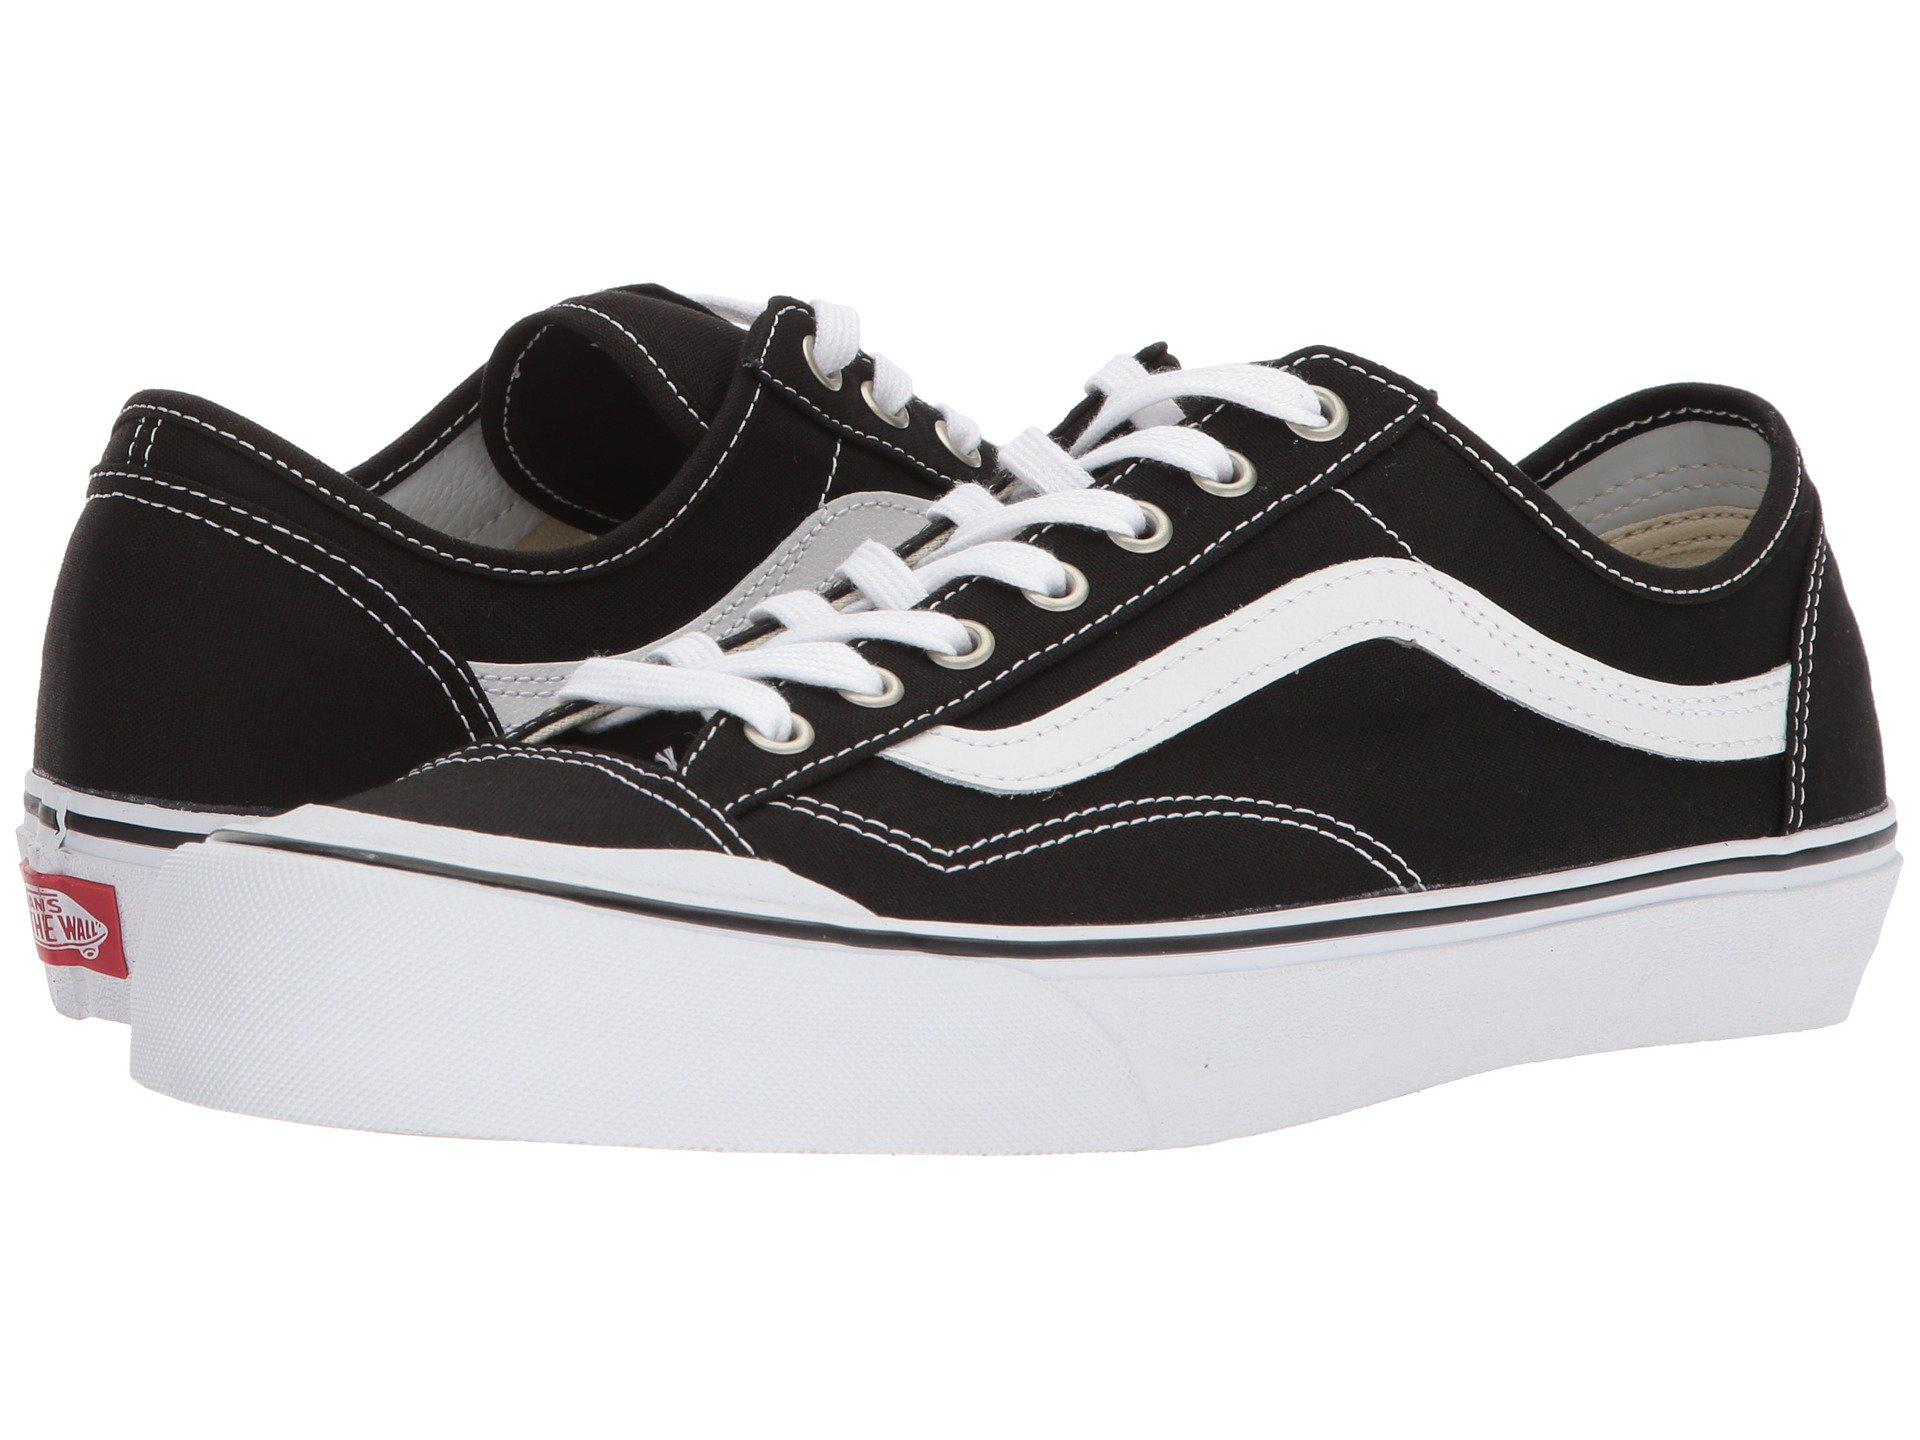 55e01cbbbc7 Lyst - Vans Style 36 Decon Sf (black white) Men s Skate Shoes in ...